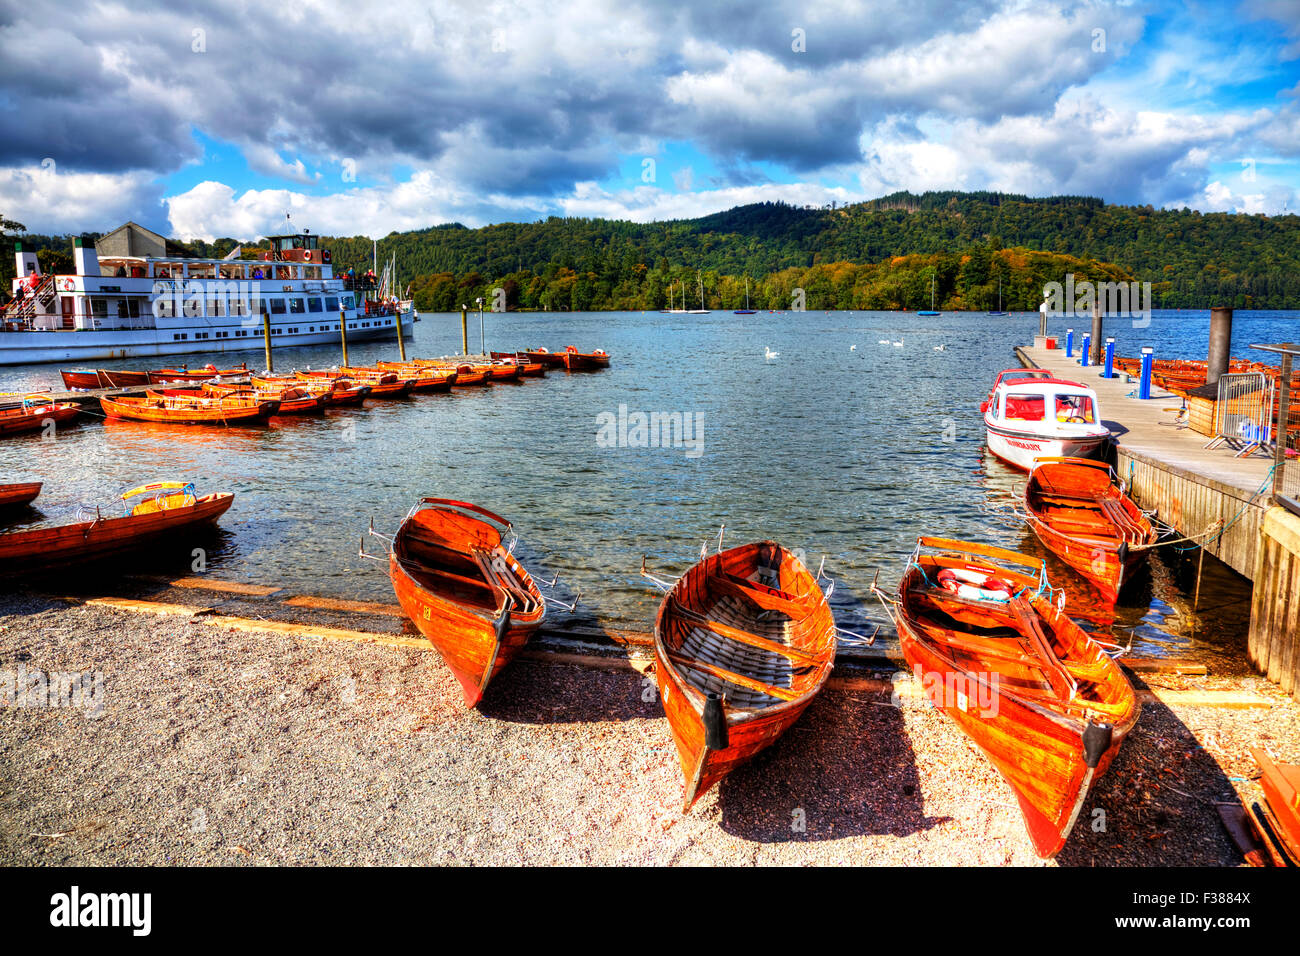 Lake Windermere rowing boats tourist trips Cumbria UK England traditional wooden boat trip - Stock Image